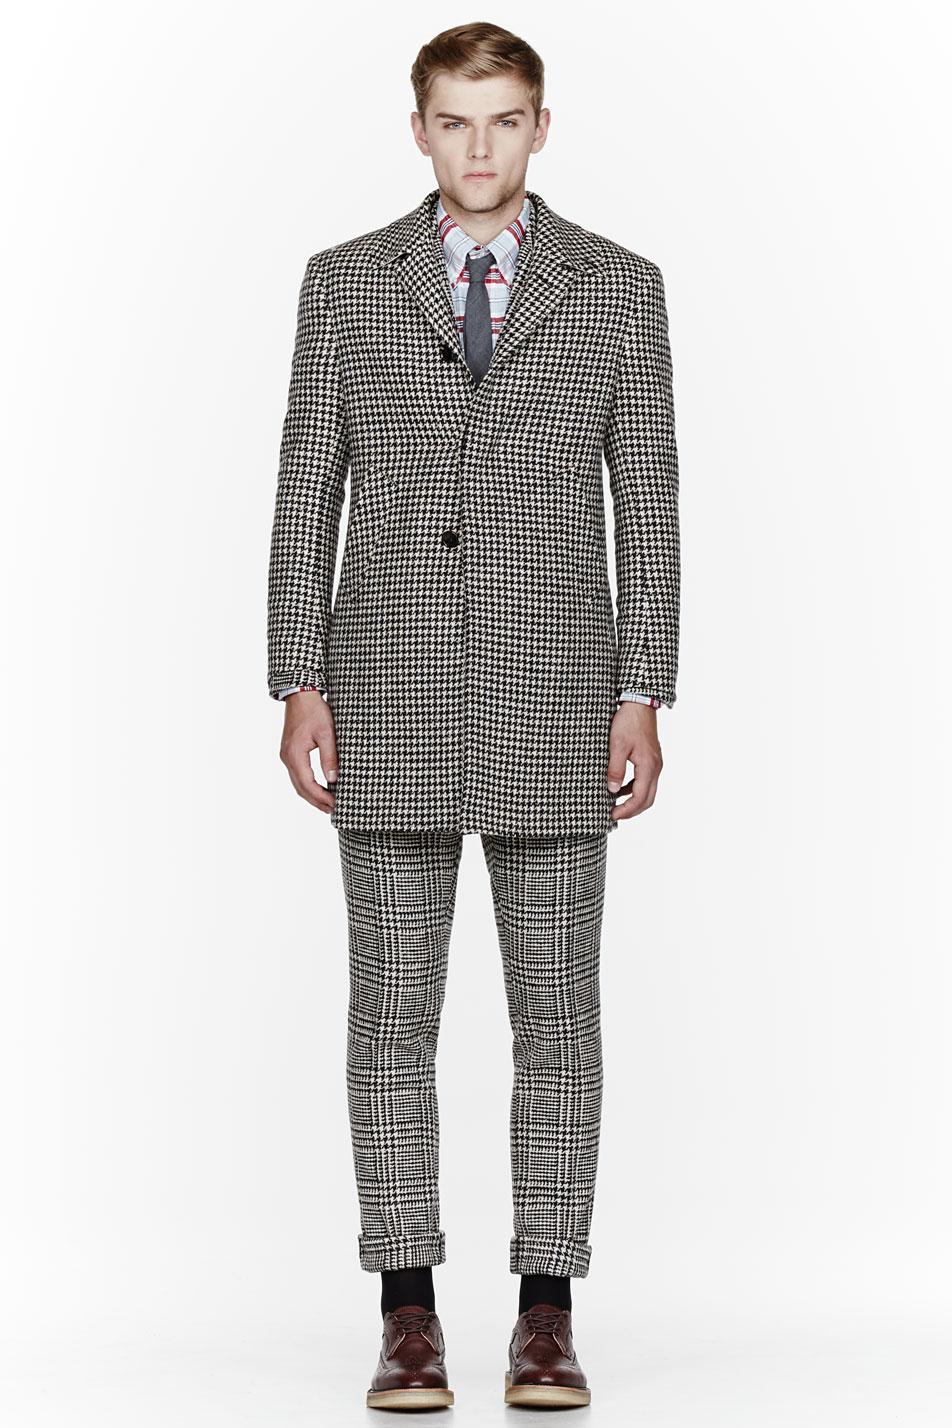 Glen Plaid Suit x Herringbone Coat Thom Browne 1